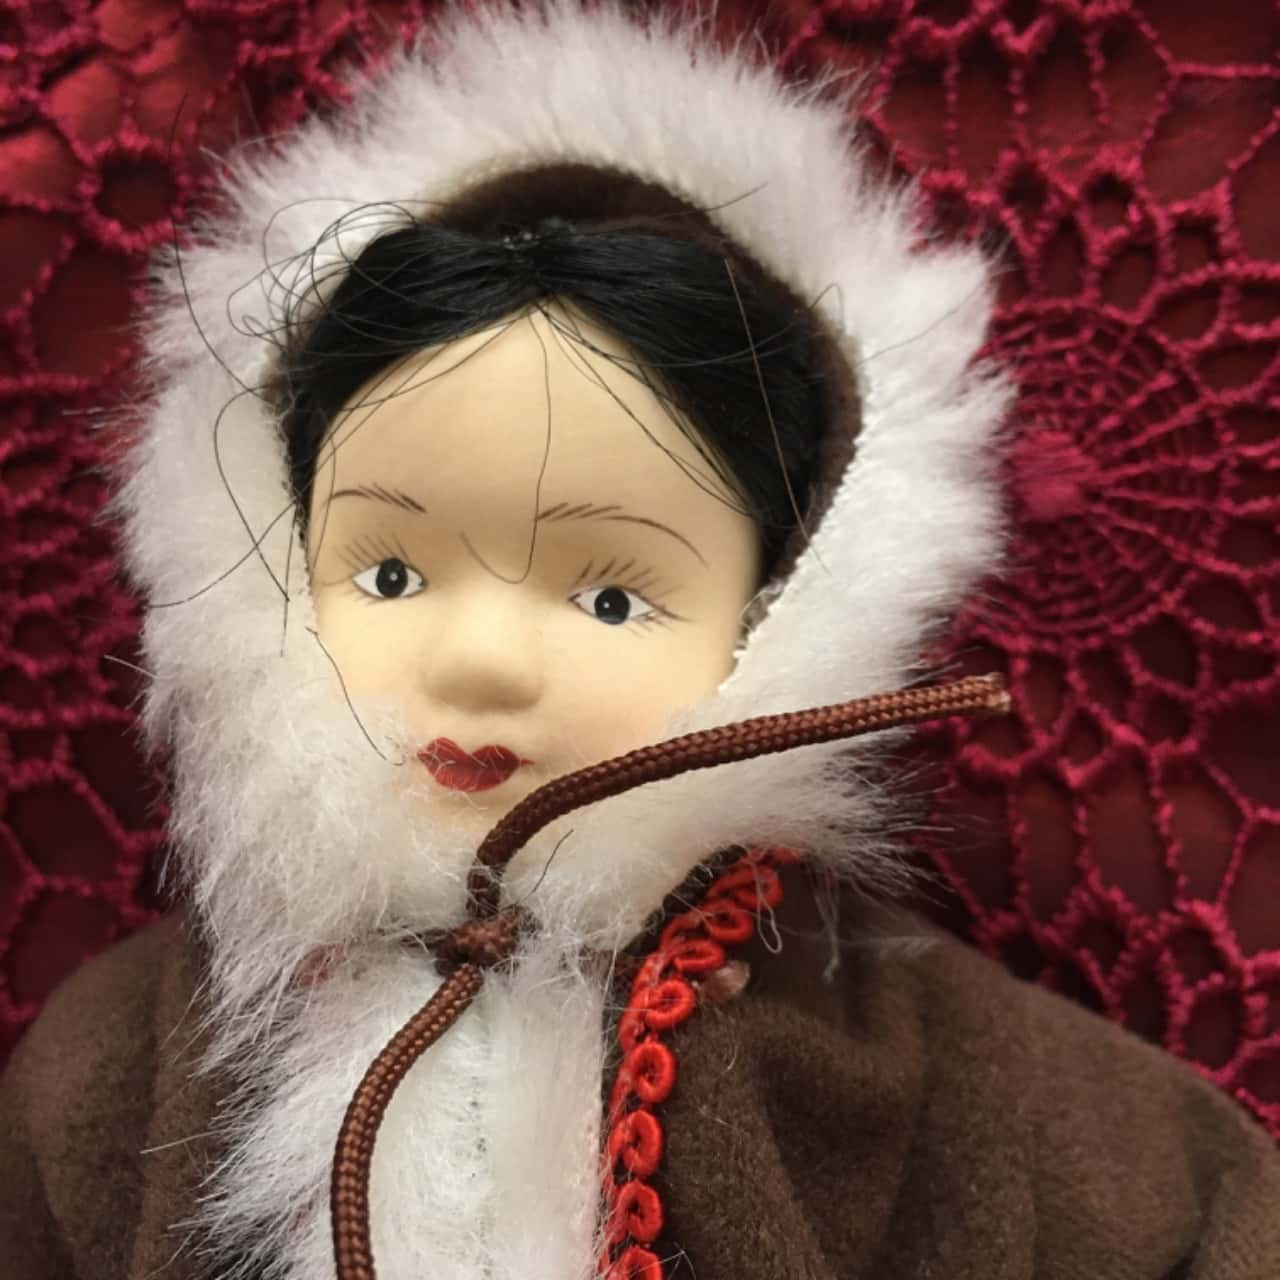 Porcelain Doll in Traditional Costume and Festive Dress from Alaska